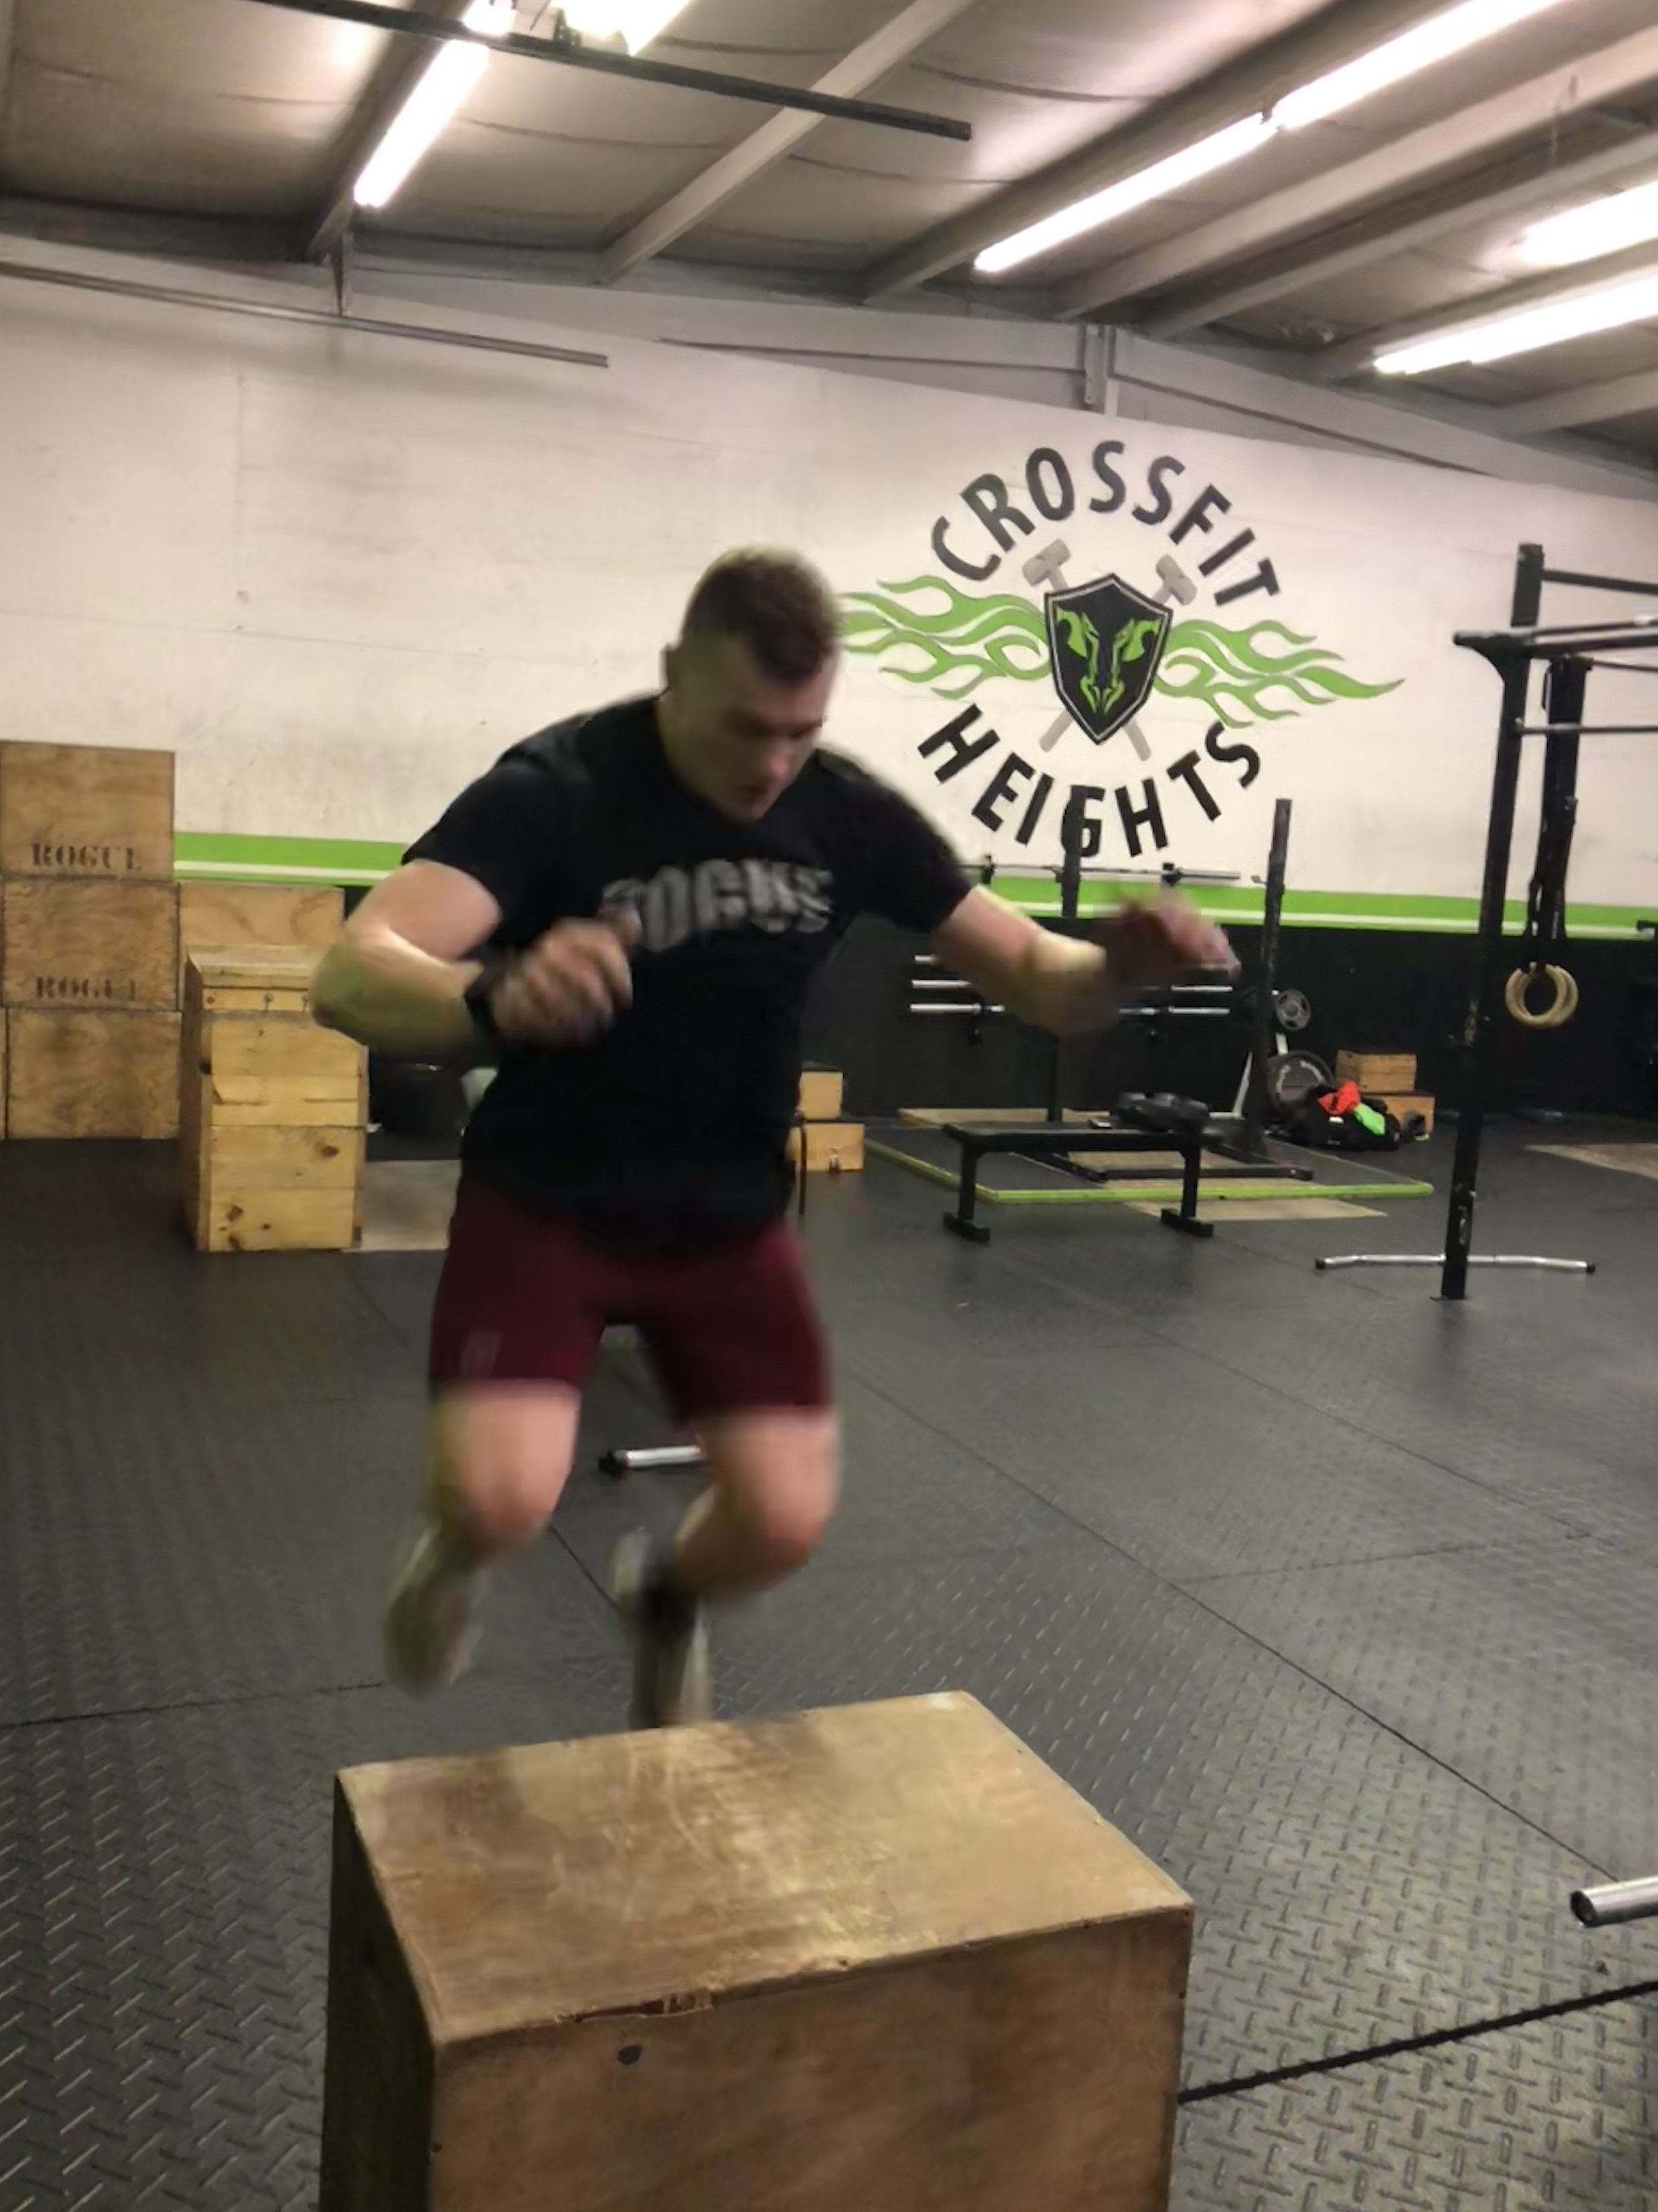 John PR'd his Power Clean and Jerk at 265# on Tuesday, he also rowed 1,000m in 3:22.    Nice work John!